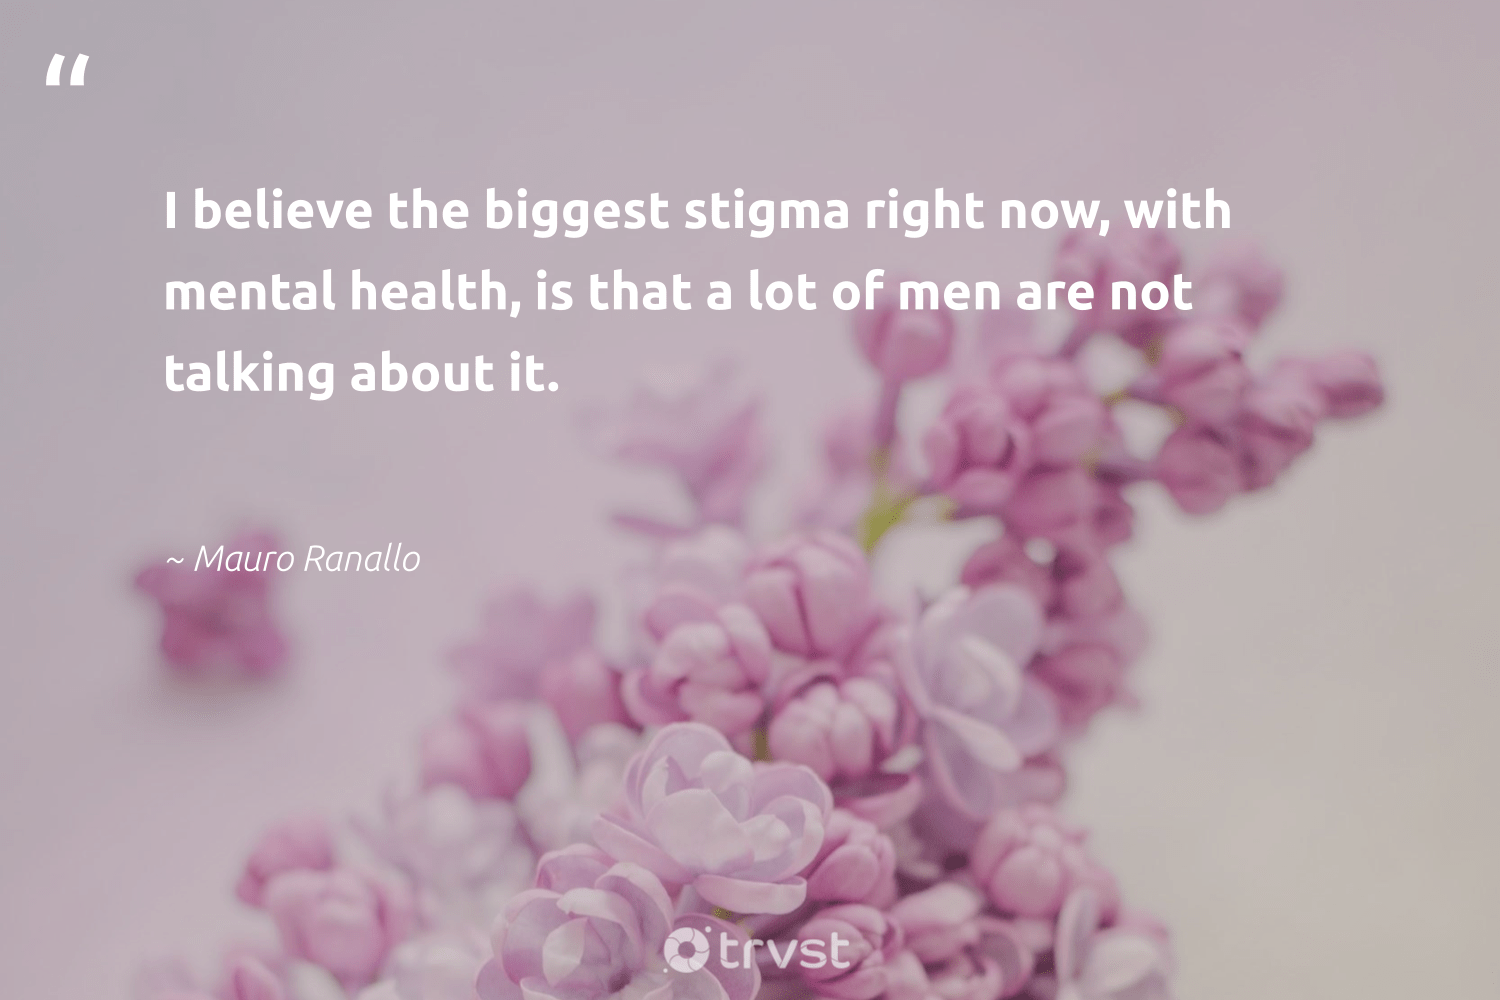 """I believe the biggest stigma right now, with mental health, is that a lot of men are not talking about it.""  - Mauro Ranallo #trvst #quotes #mentalhealth #health #mentalhealthmatters #mindset #nevergiveup #thinkgreen #depression #togetherwecan #changemakers #socialchange"